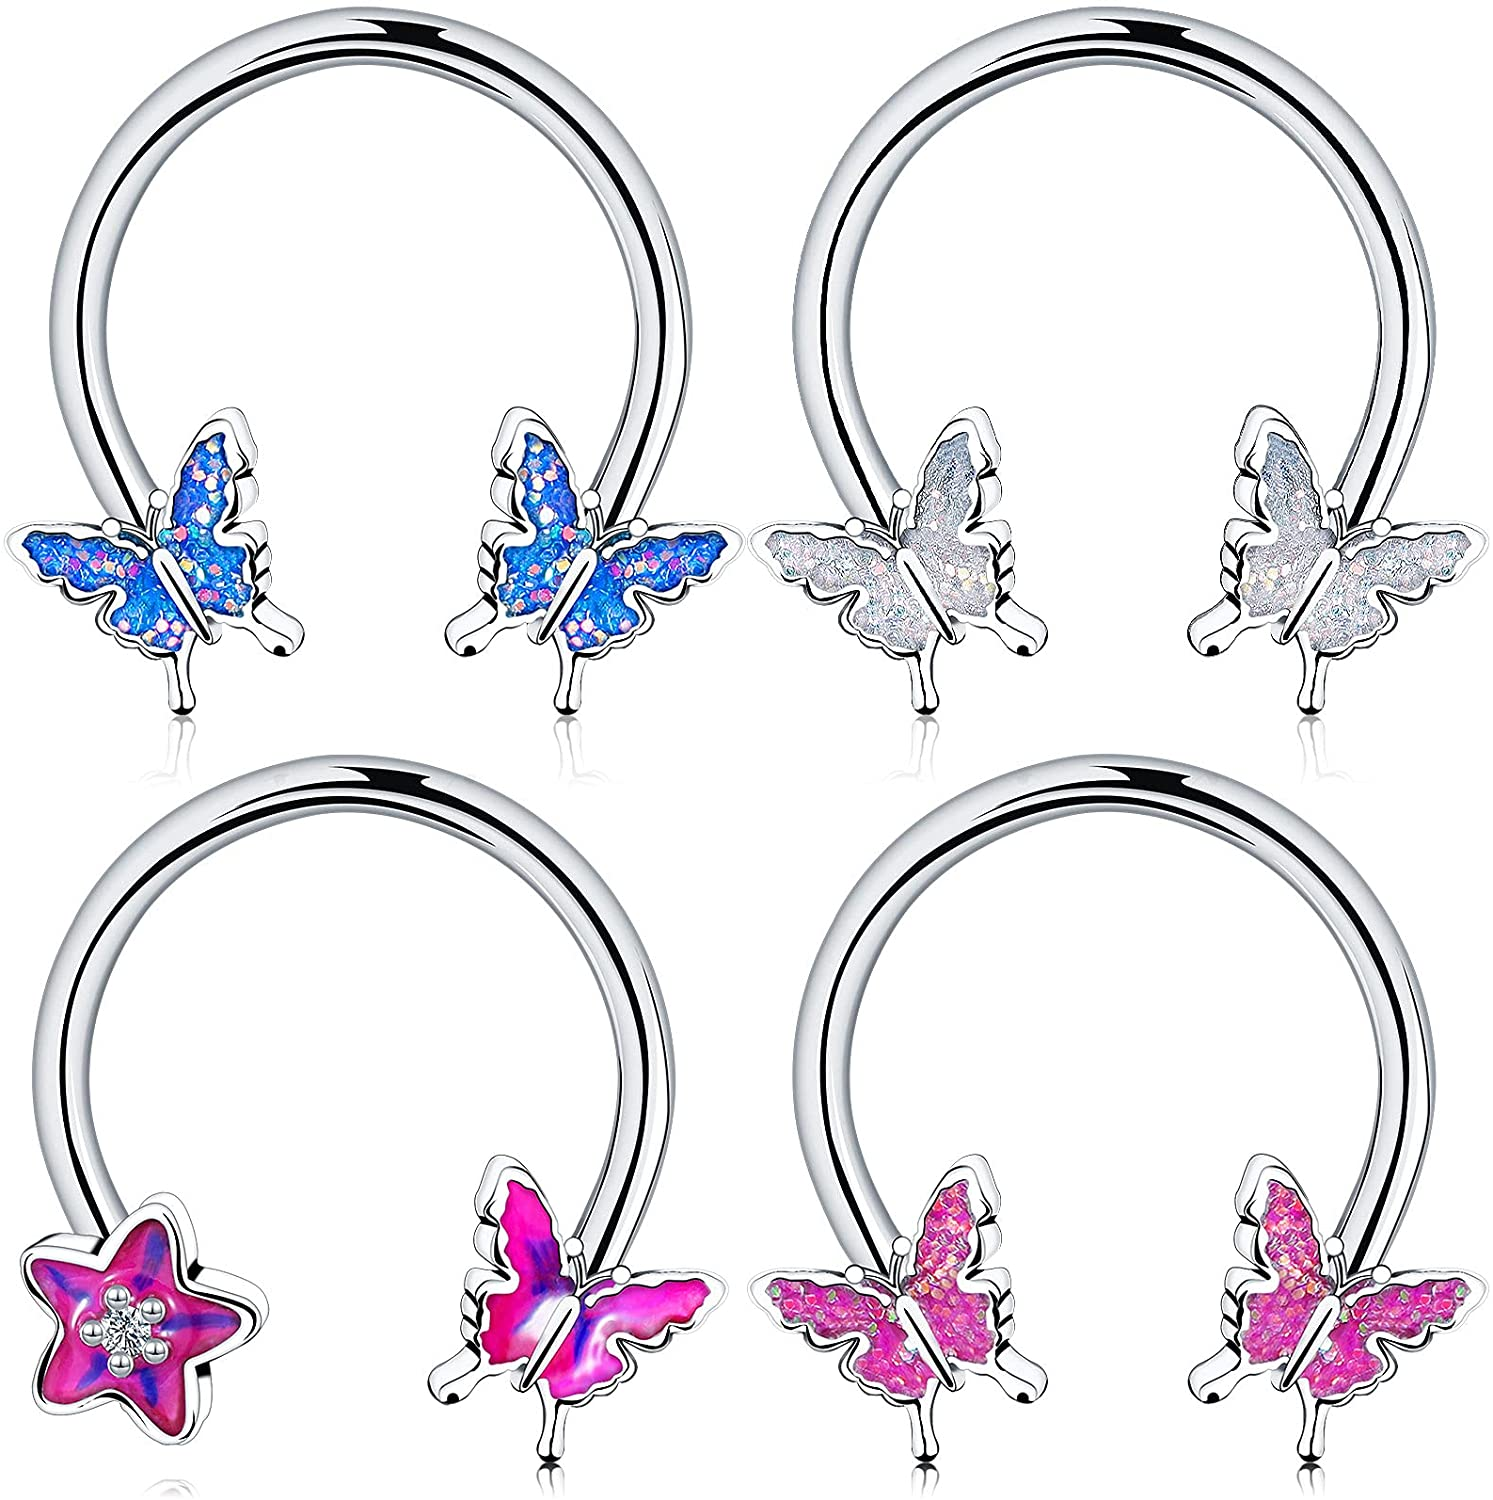 4 Pieces Septum Ring Horseshoe Hoop Ring 16g Butterfly Nose Rings Earring Cartilage Earring Hoop Captive Bead Rings Tragus Daith Rook Helix Piercing Body Jewelry for Women Man